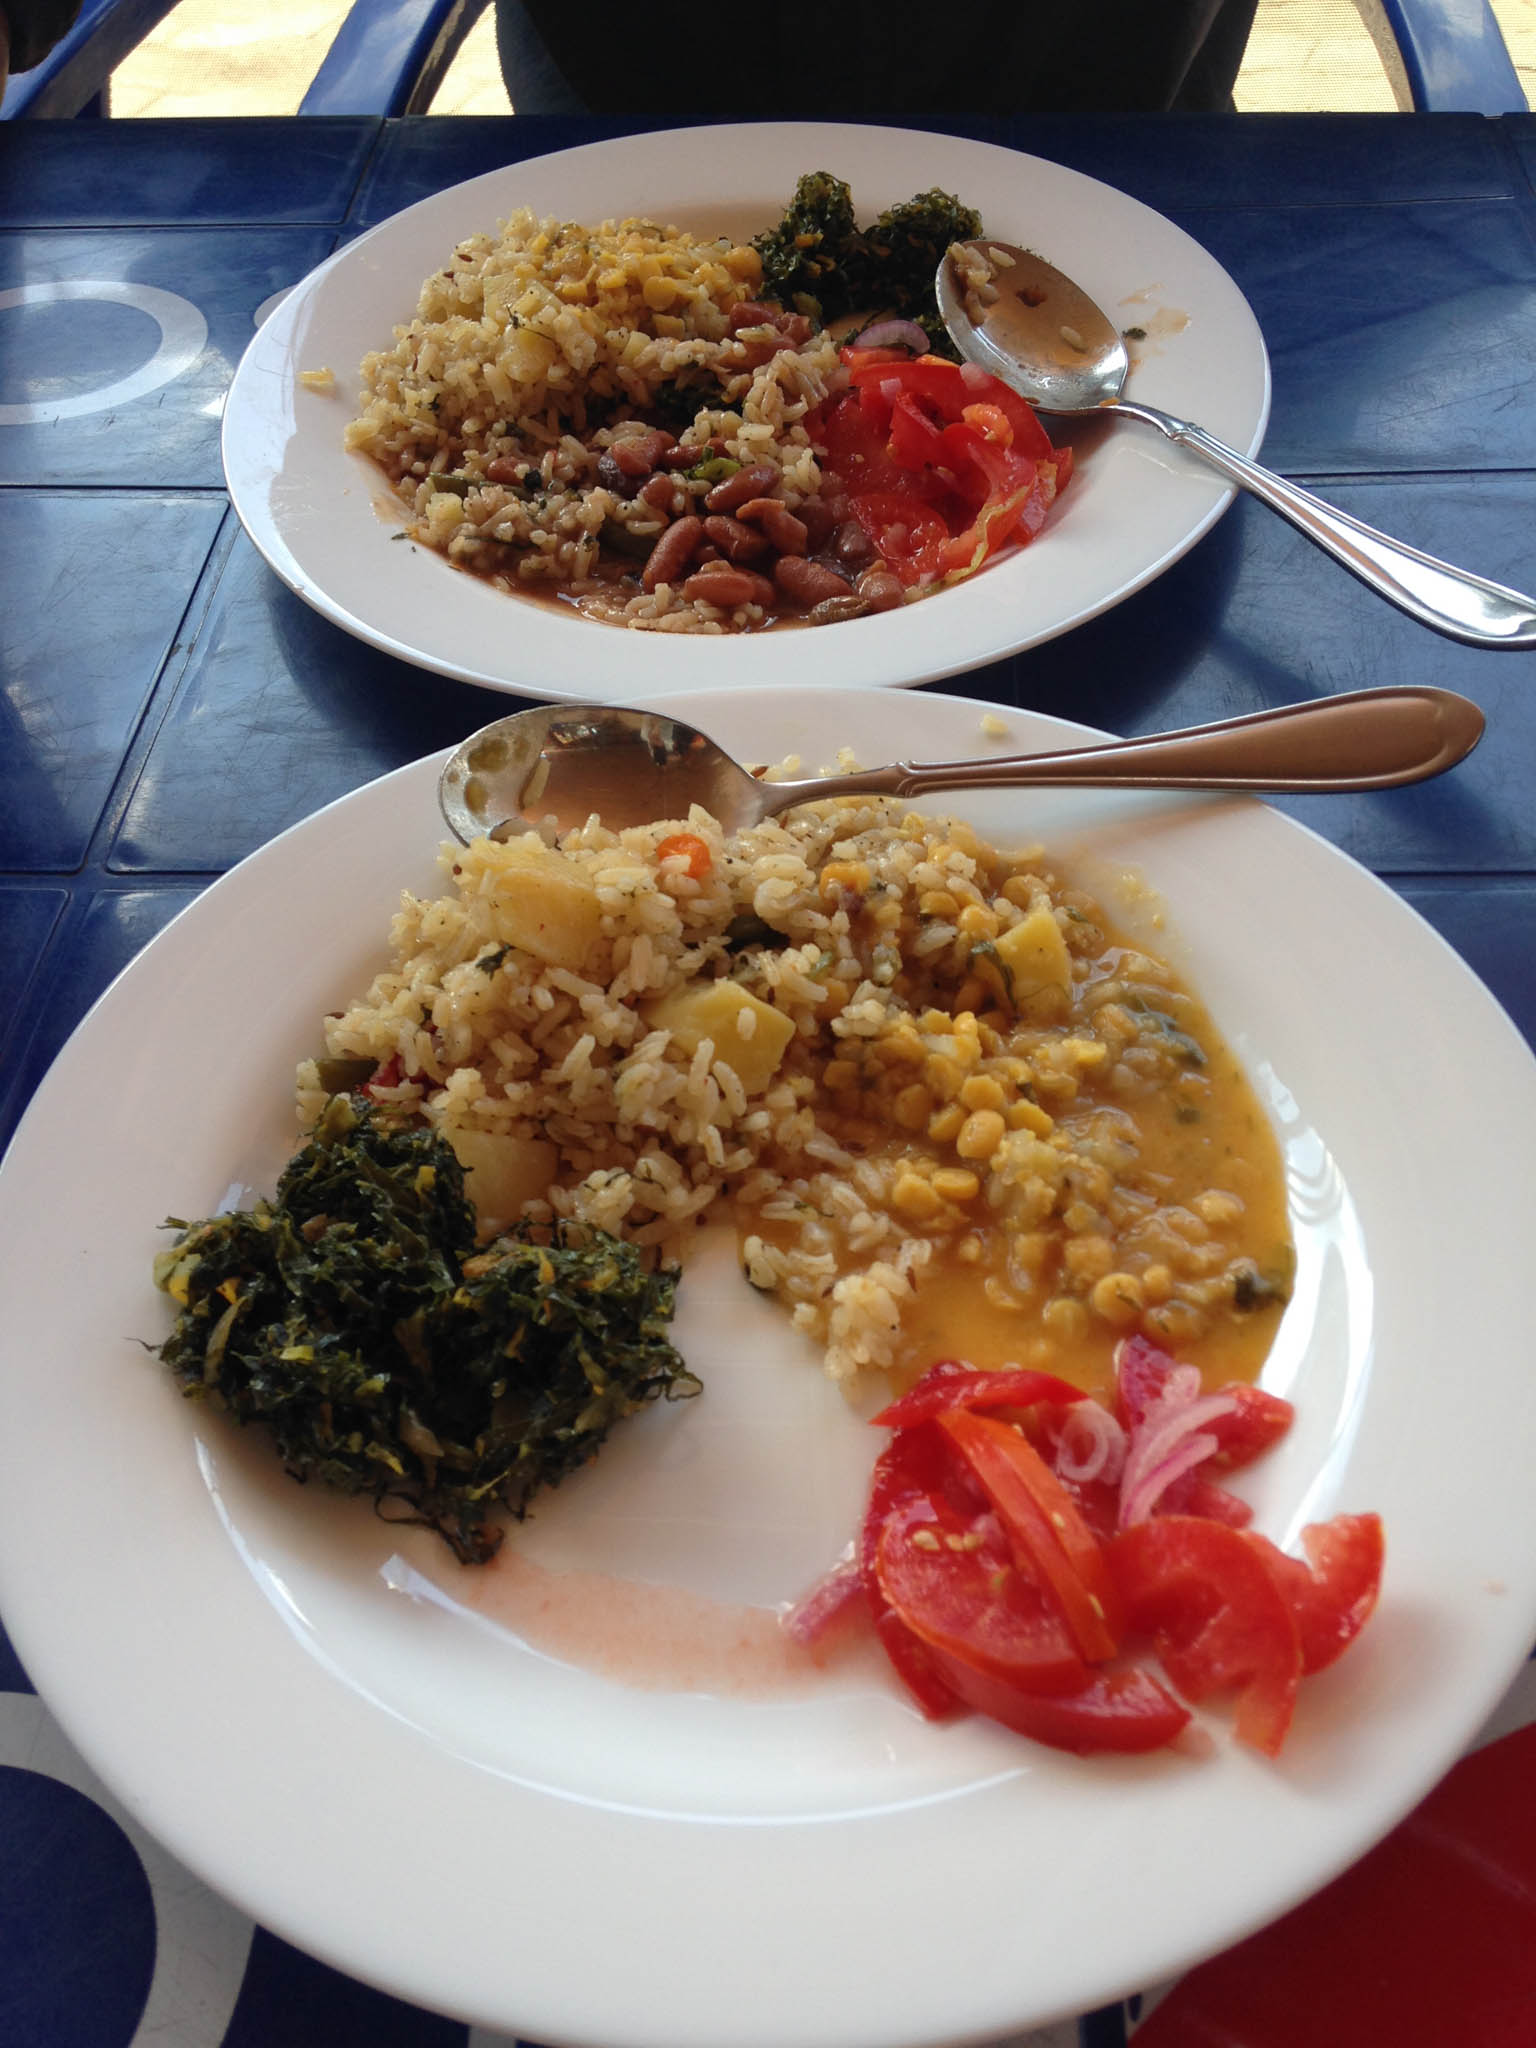 Lunch at Bhaajia was a traditional Tanzanian rice and lentil curry. Very tasty!!